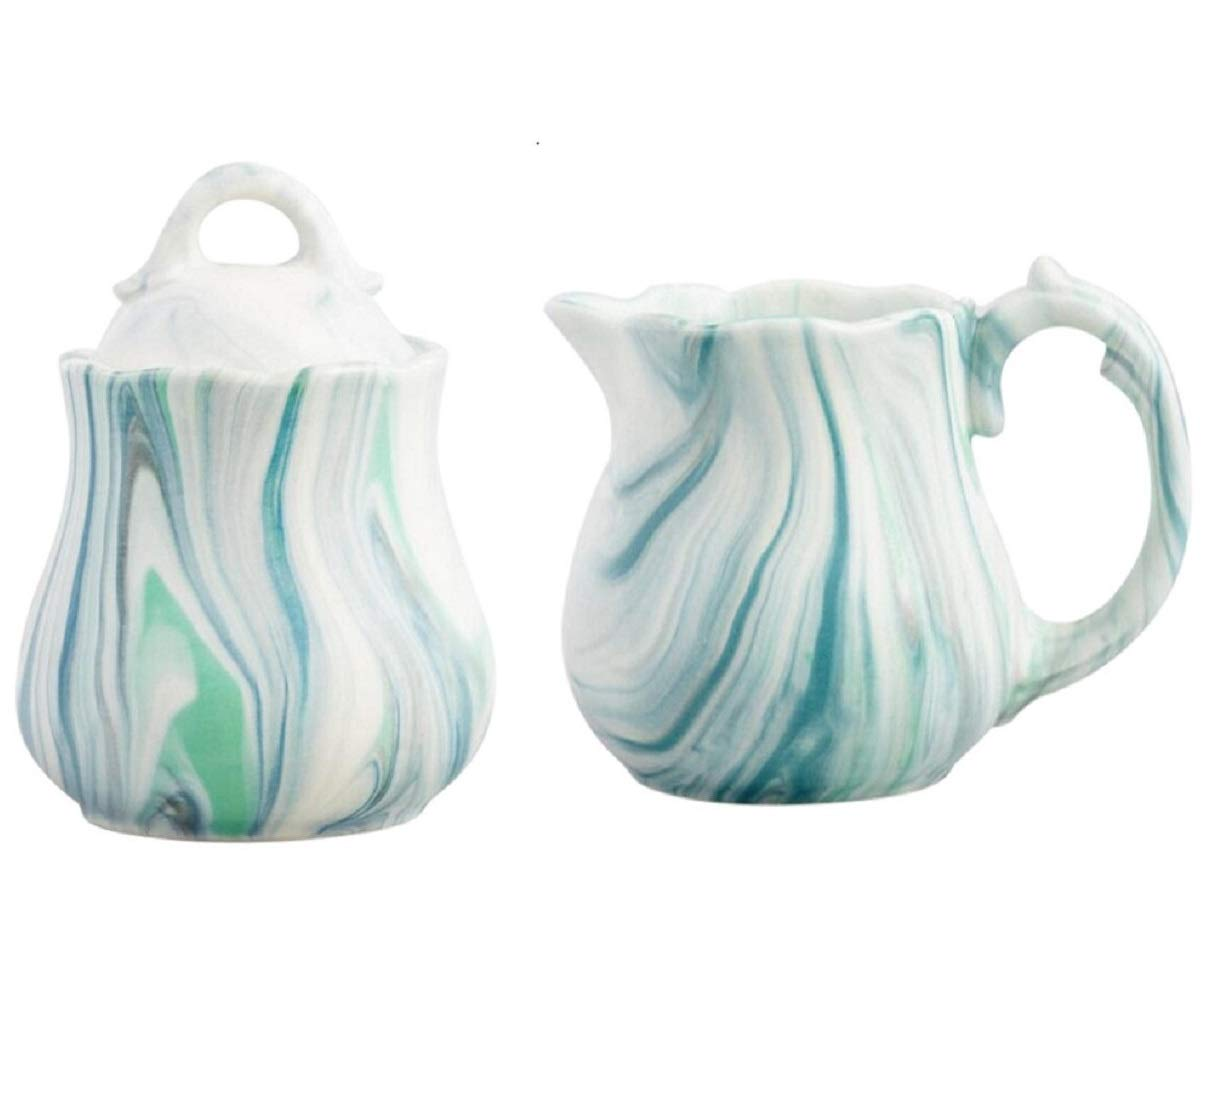 Marble Creamer and Sugar Bowl Pot with Lid Set - Green Stoneware